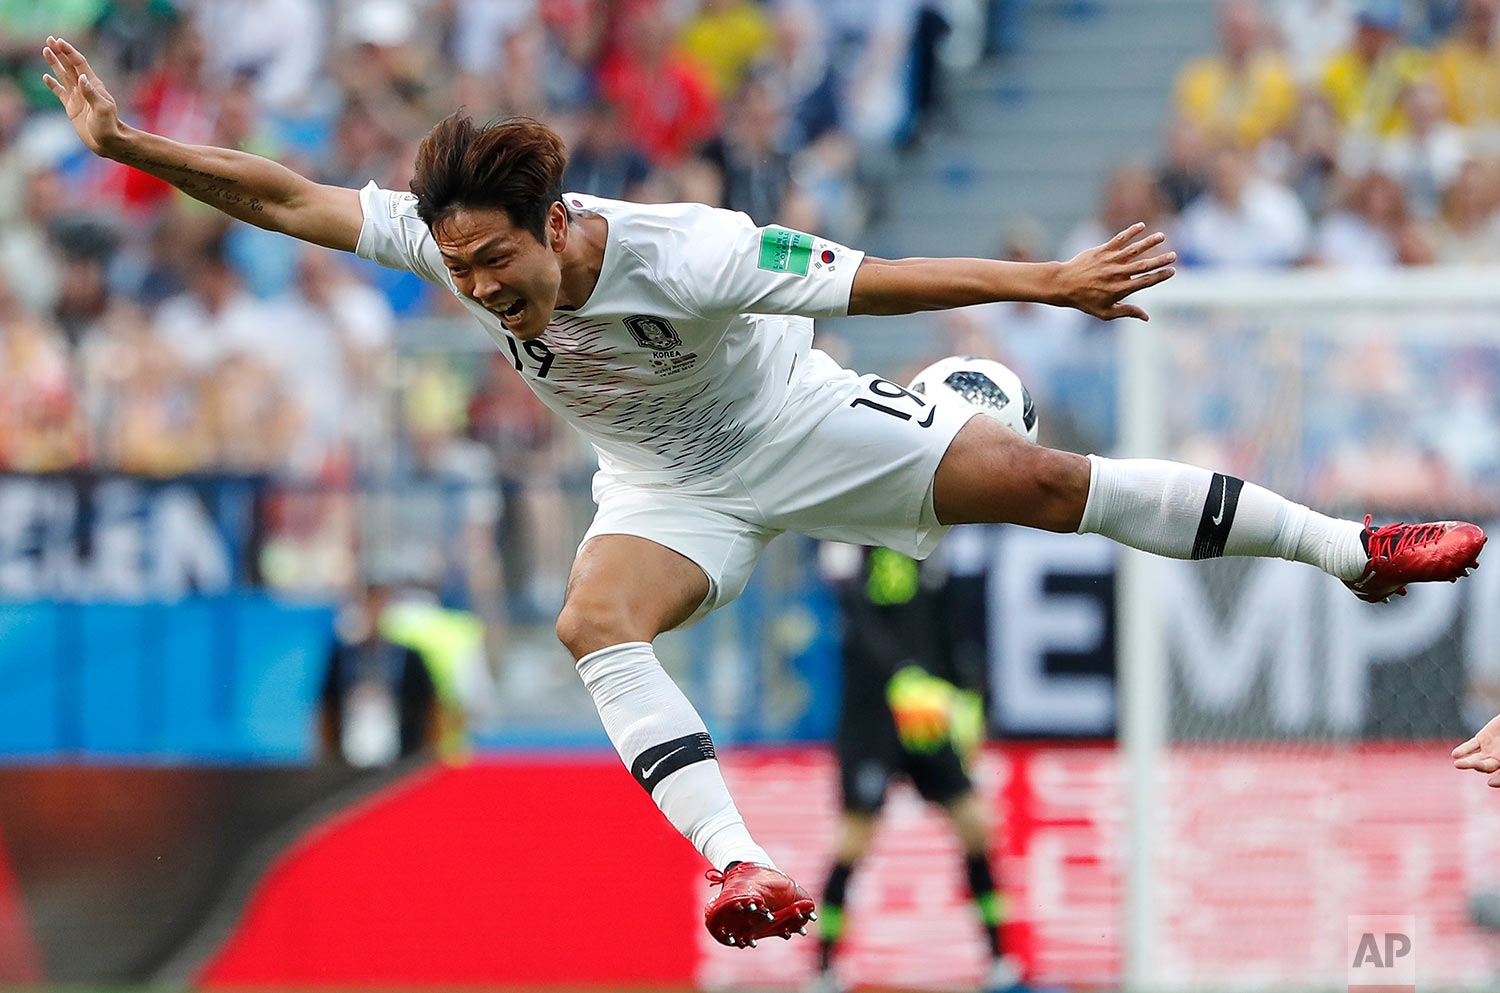 South Korea's Kim Young-gwon goes airborne during a challenge with Sweden's Marcus Berg during the group F match between Sweden and South Korea at the 2018 soccer World Cup in the Nizhny Novgorod stadium in Nizhny Novgorod, Russia, Monday, June 18, 2018. (AP Photo/Pavel Golovkin)